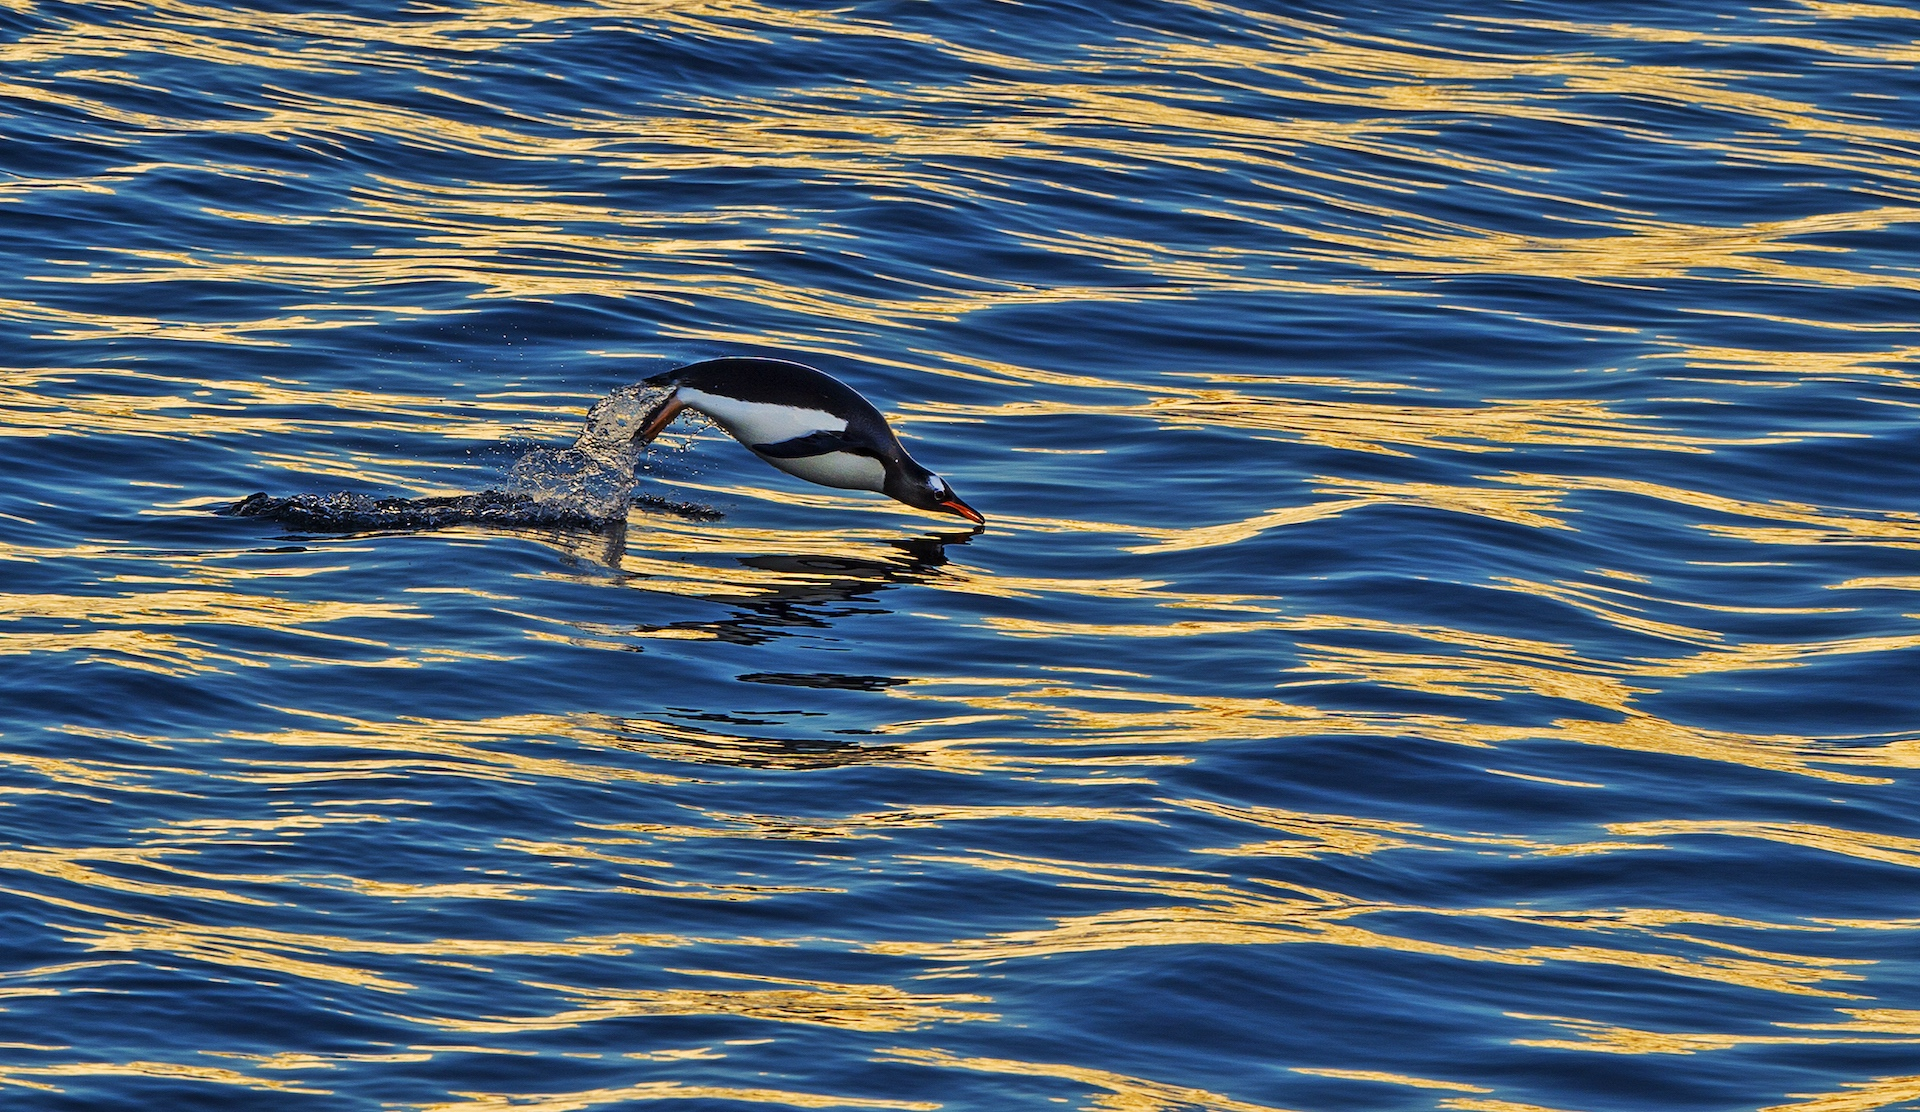 Gentoos are curious, approachable, and expert swimmers, and spend much of their time hunting for fish and squid. Underwater, they can reach speeds of 35 kmph, and are the fastest diving bird in the world.